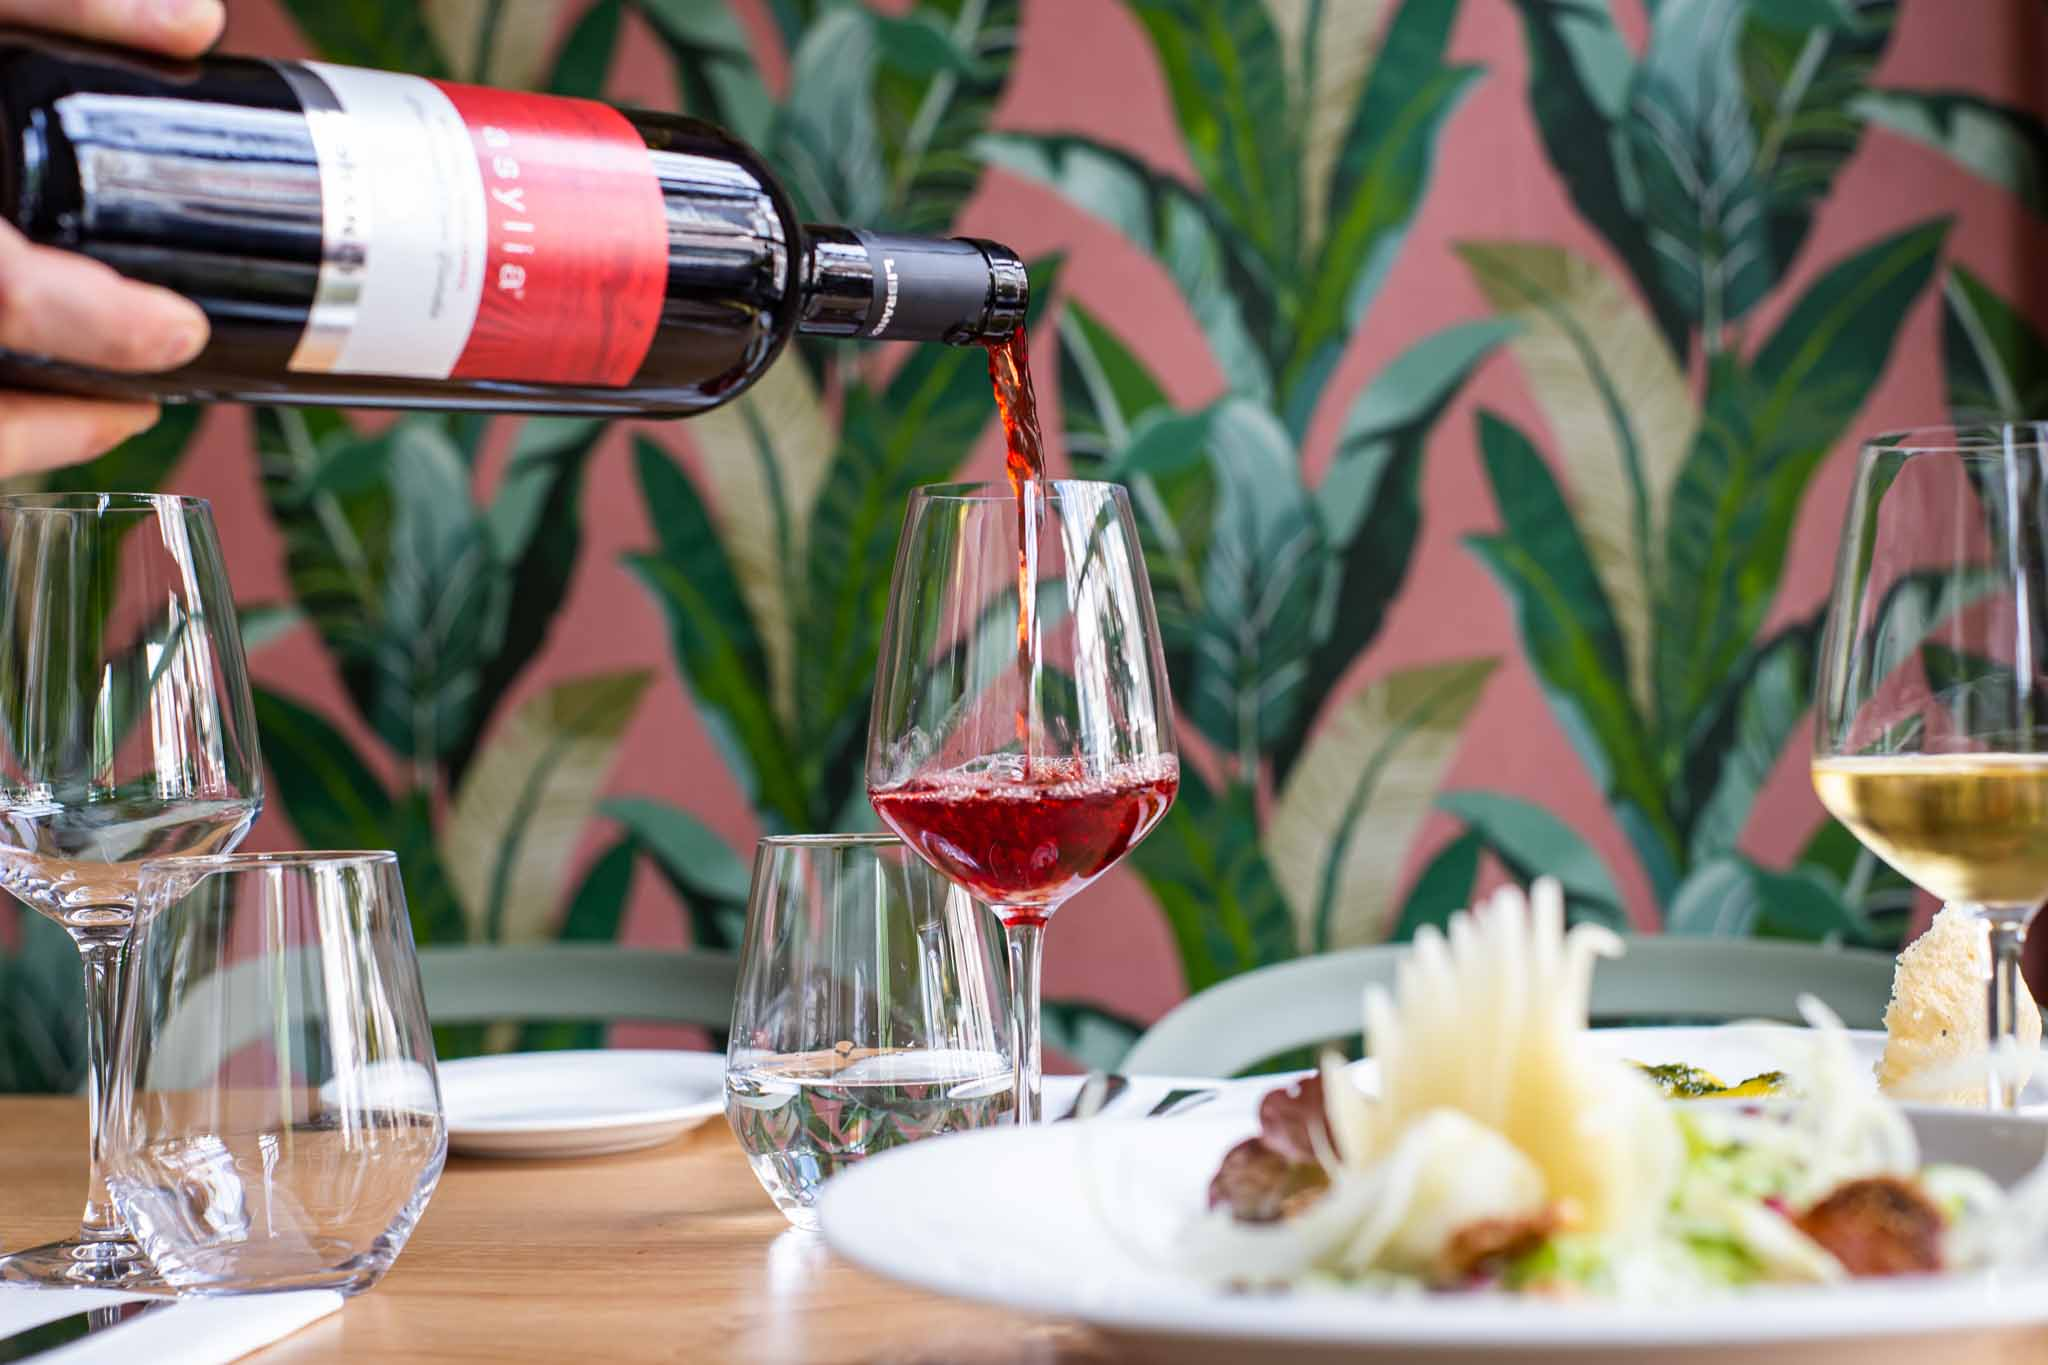 Red wine being poured into a glass in an Italian Restaurant